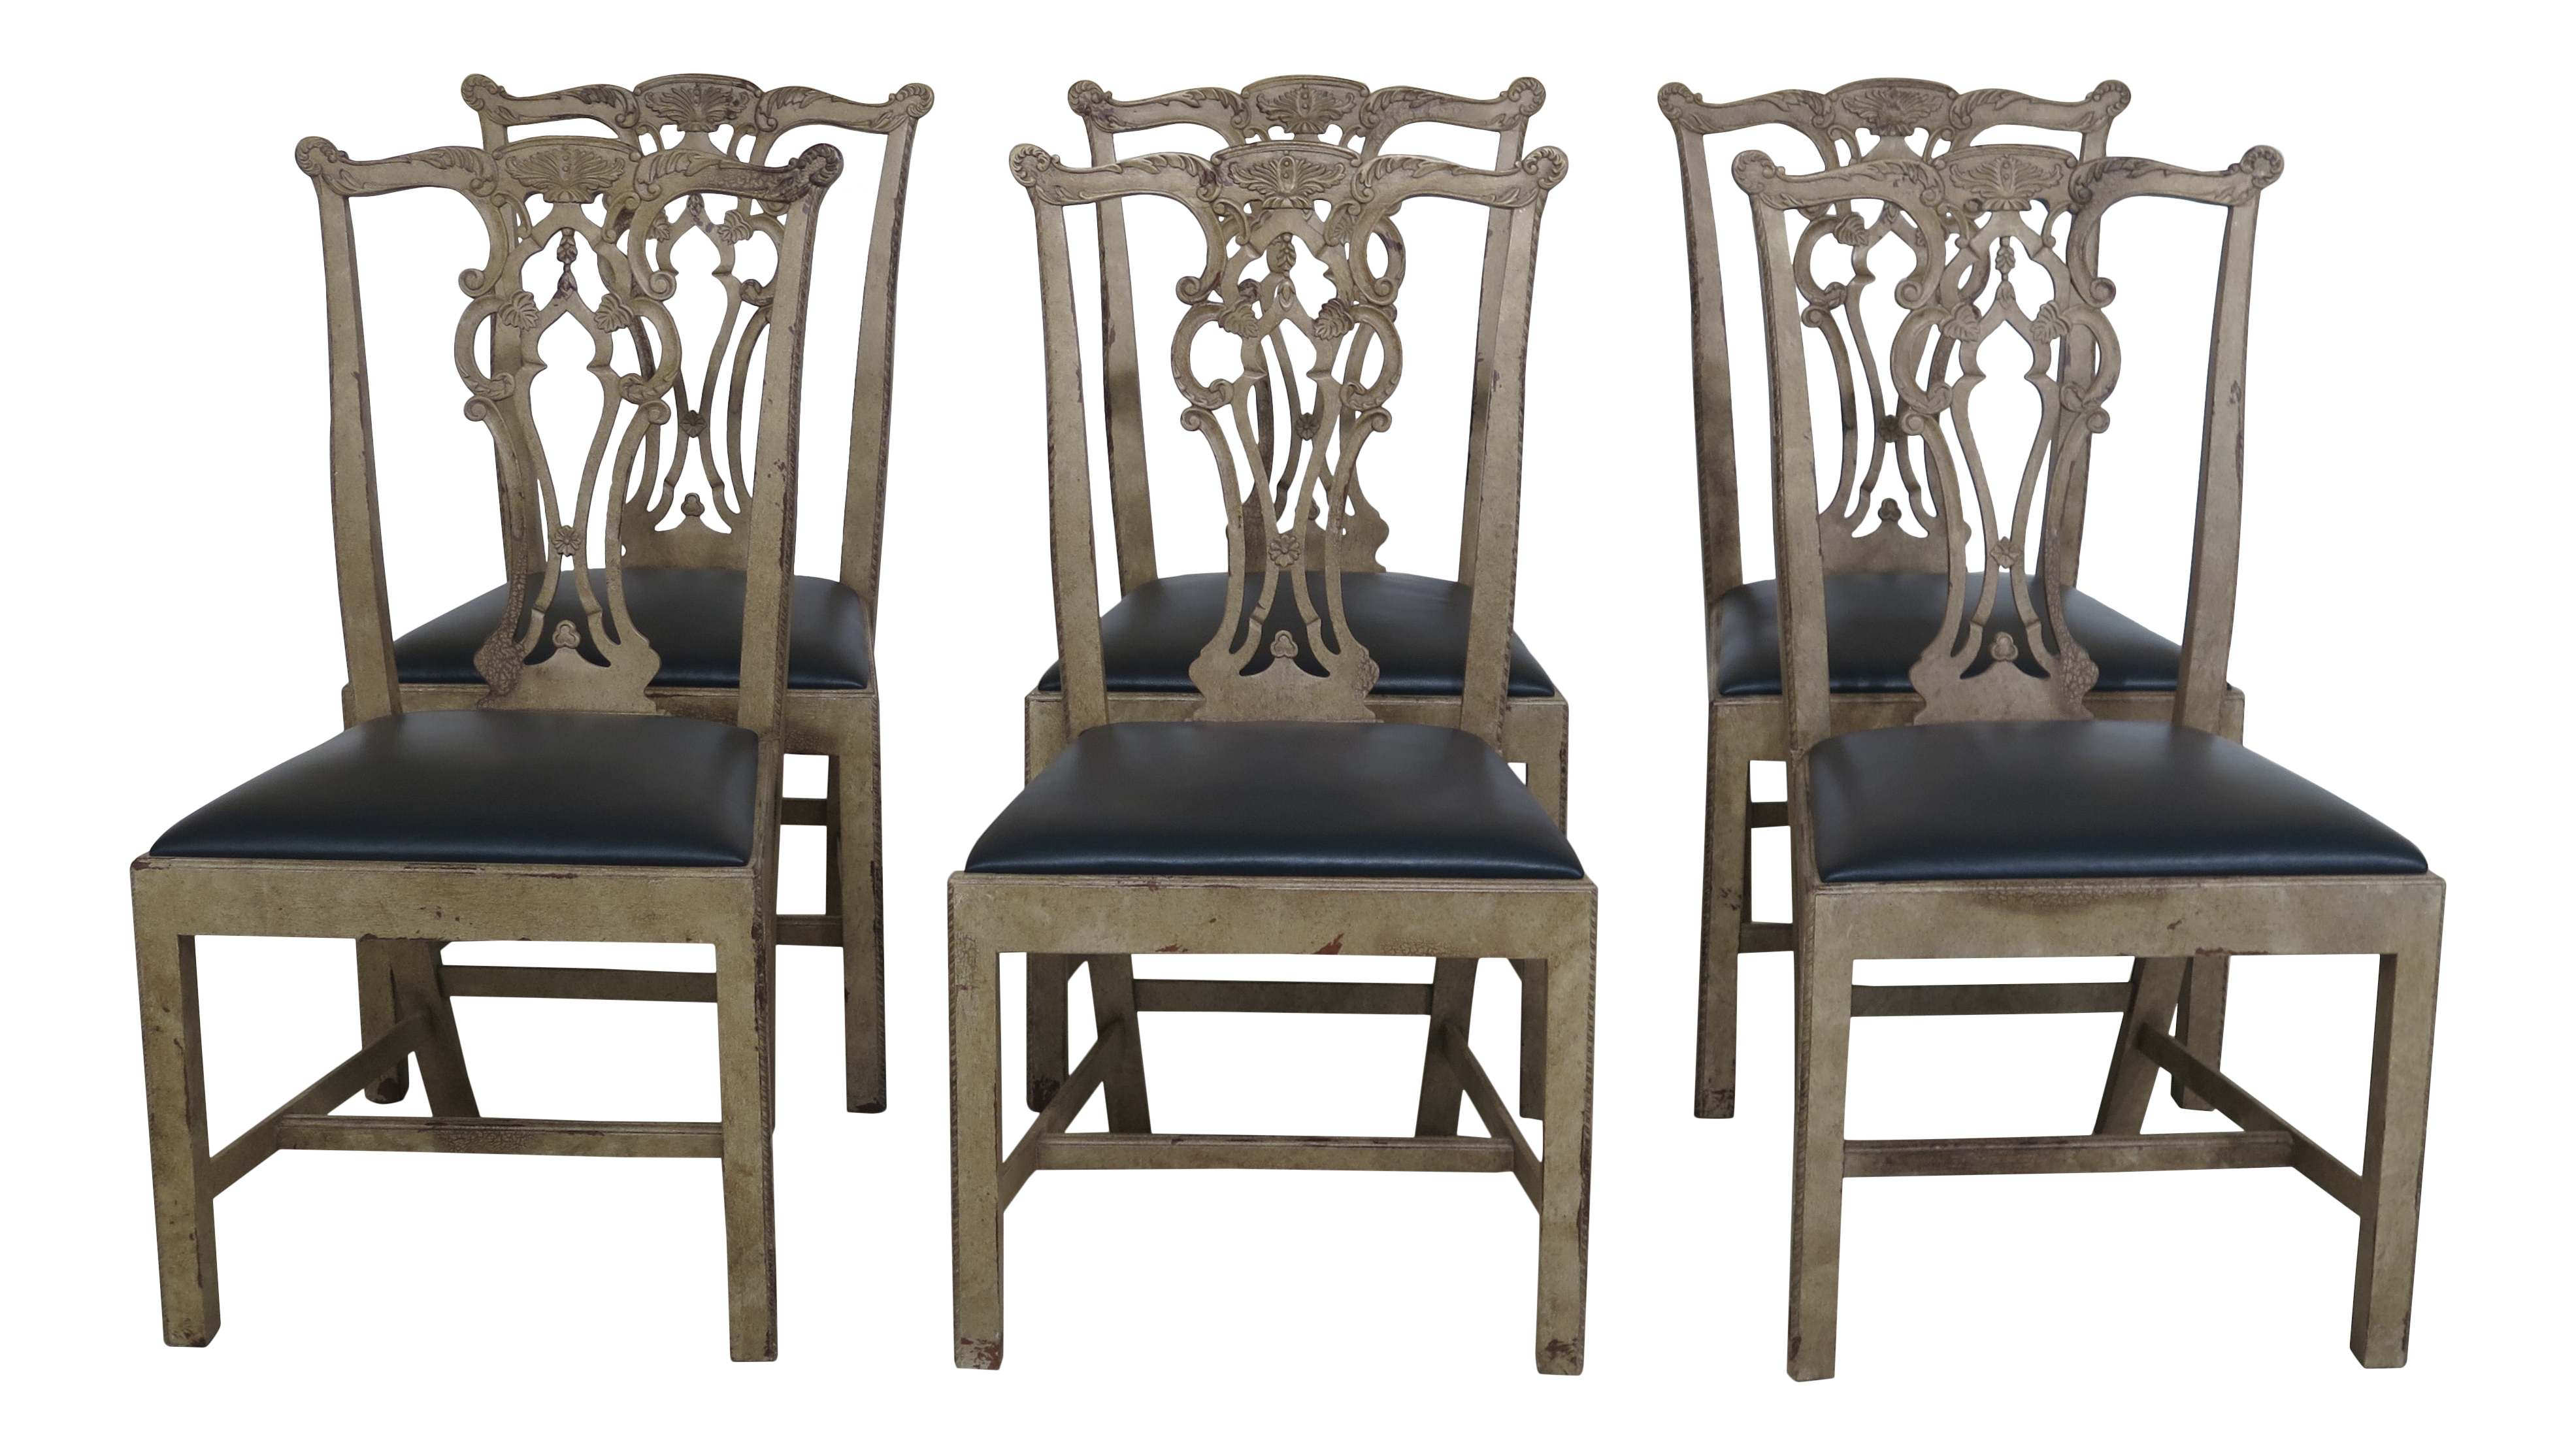 Cucina Letters Kitchen Decor, Hickory Chair Co Paint Decorated Dining Room Chairs Set Of 6 Chairish